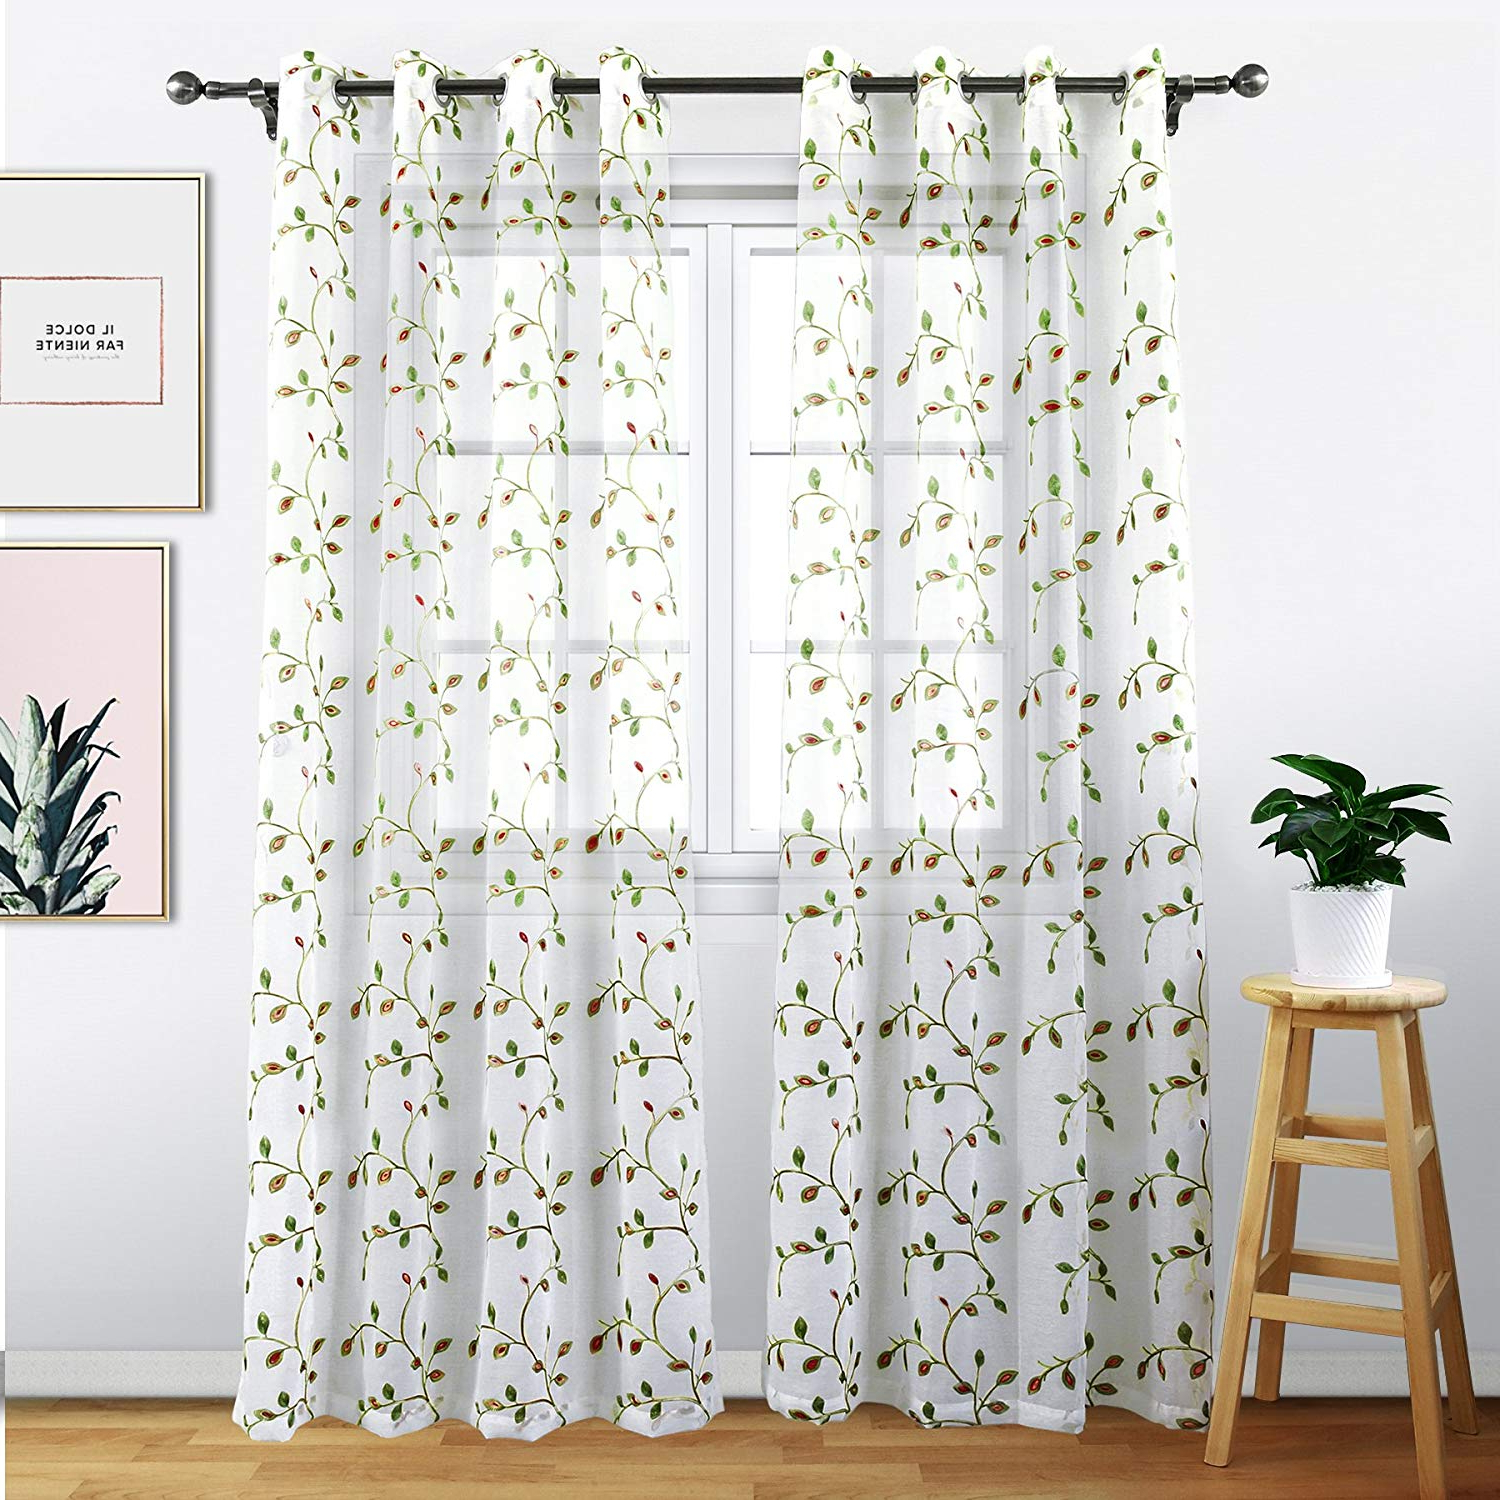 Wavy Leaves Embroidered Sheer Extra Wide Grommet Curtain Panels Inside 2020 Eamior Sheer Window Panels Voile Curtains – High Thread Sheer Voile Curtain  Panels With Grommet Top For Living Room (2 Panels, 54 Wide X 95 Inches (View 18 of 20)